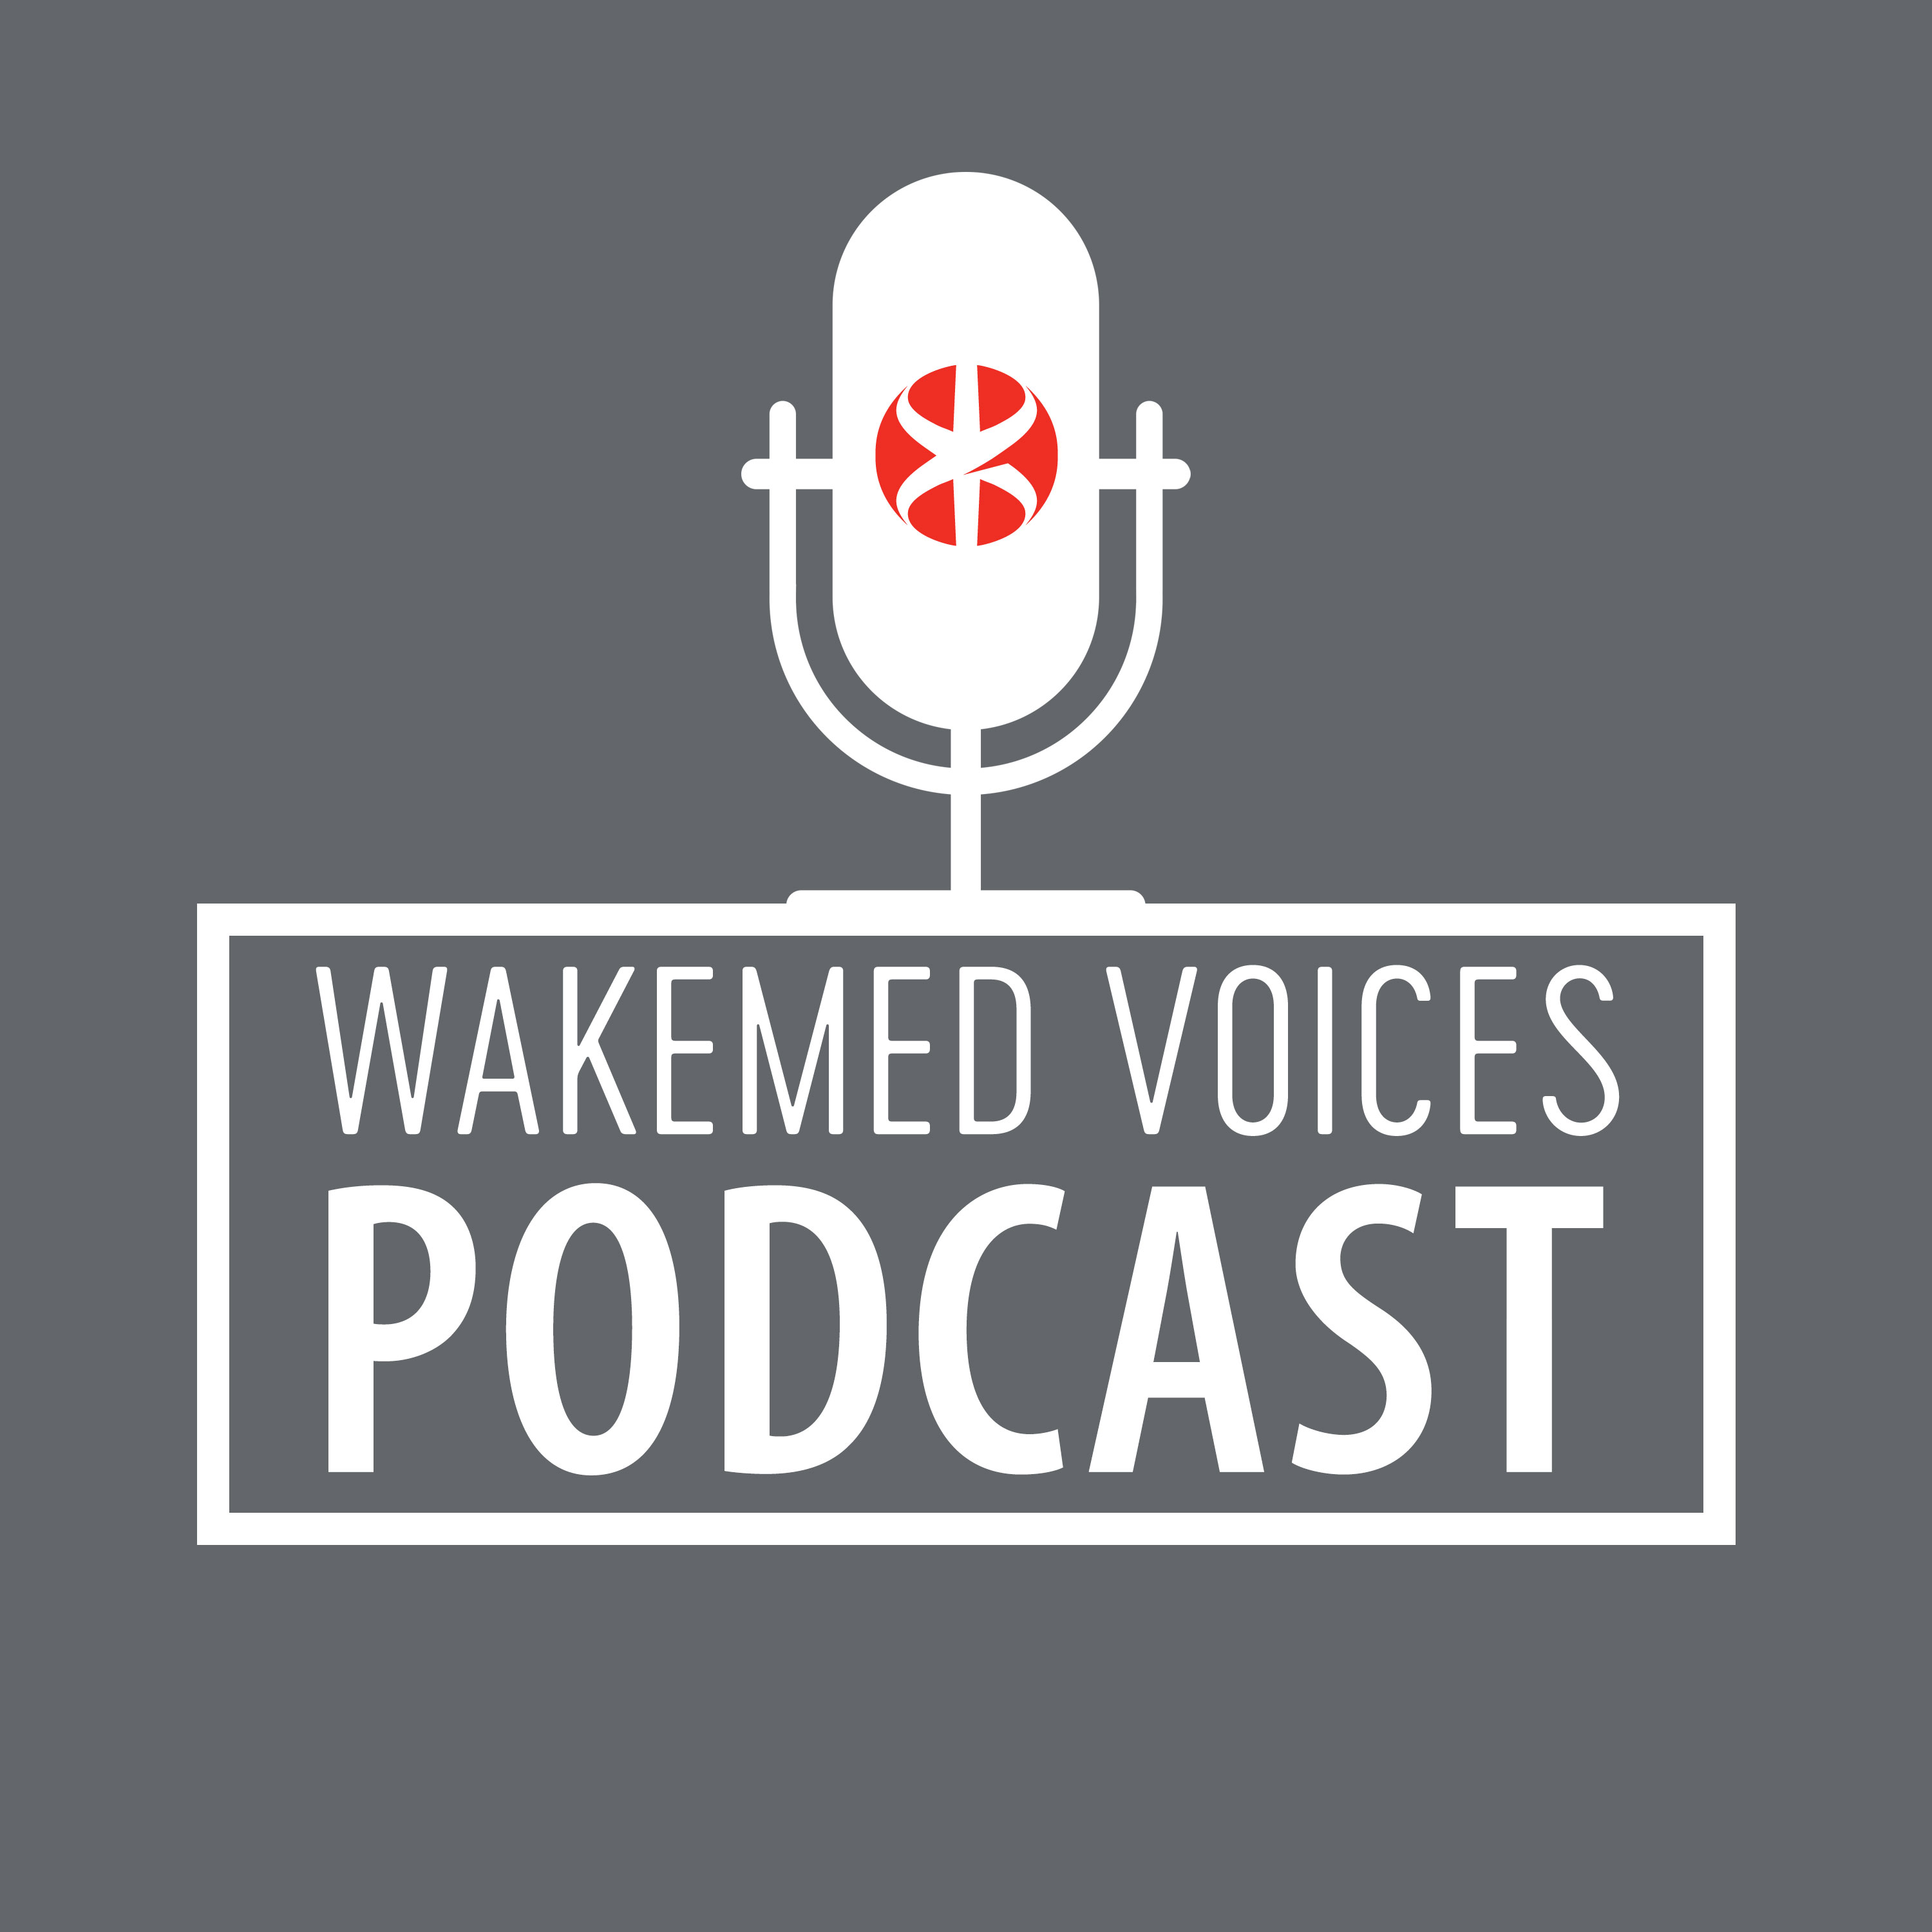 WakeMed Voices Podcast Logo